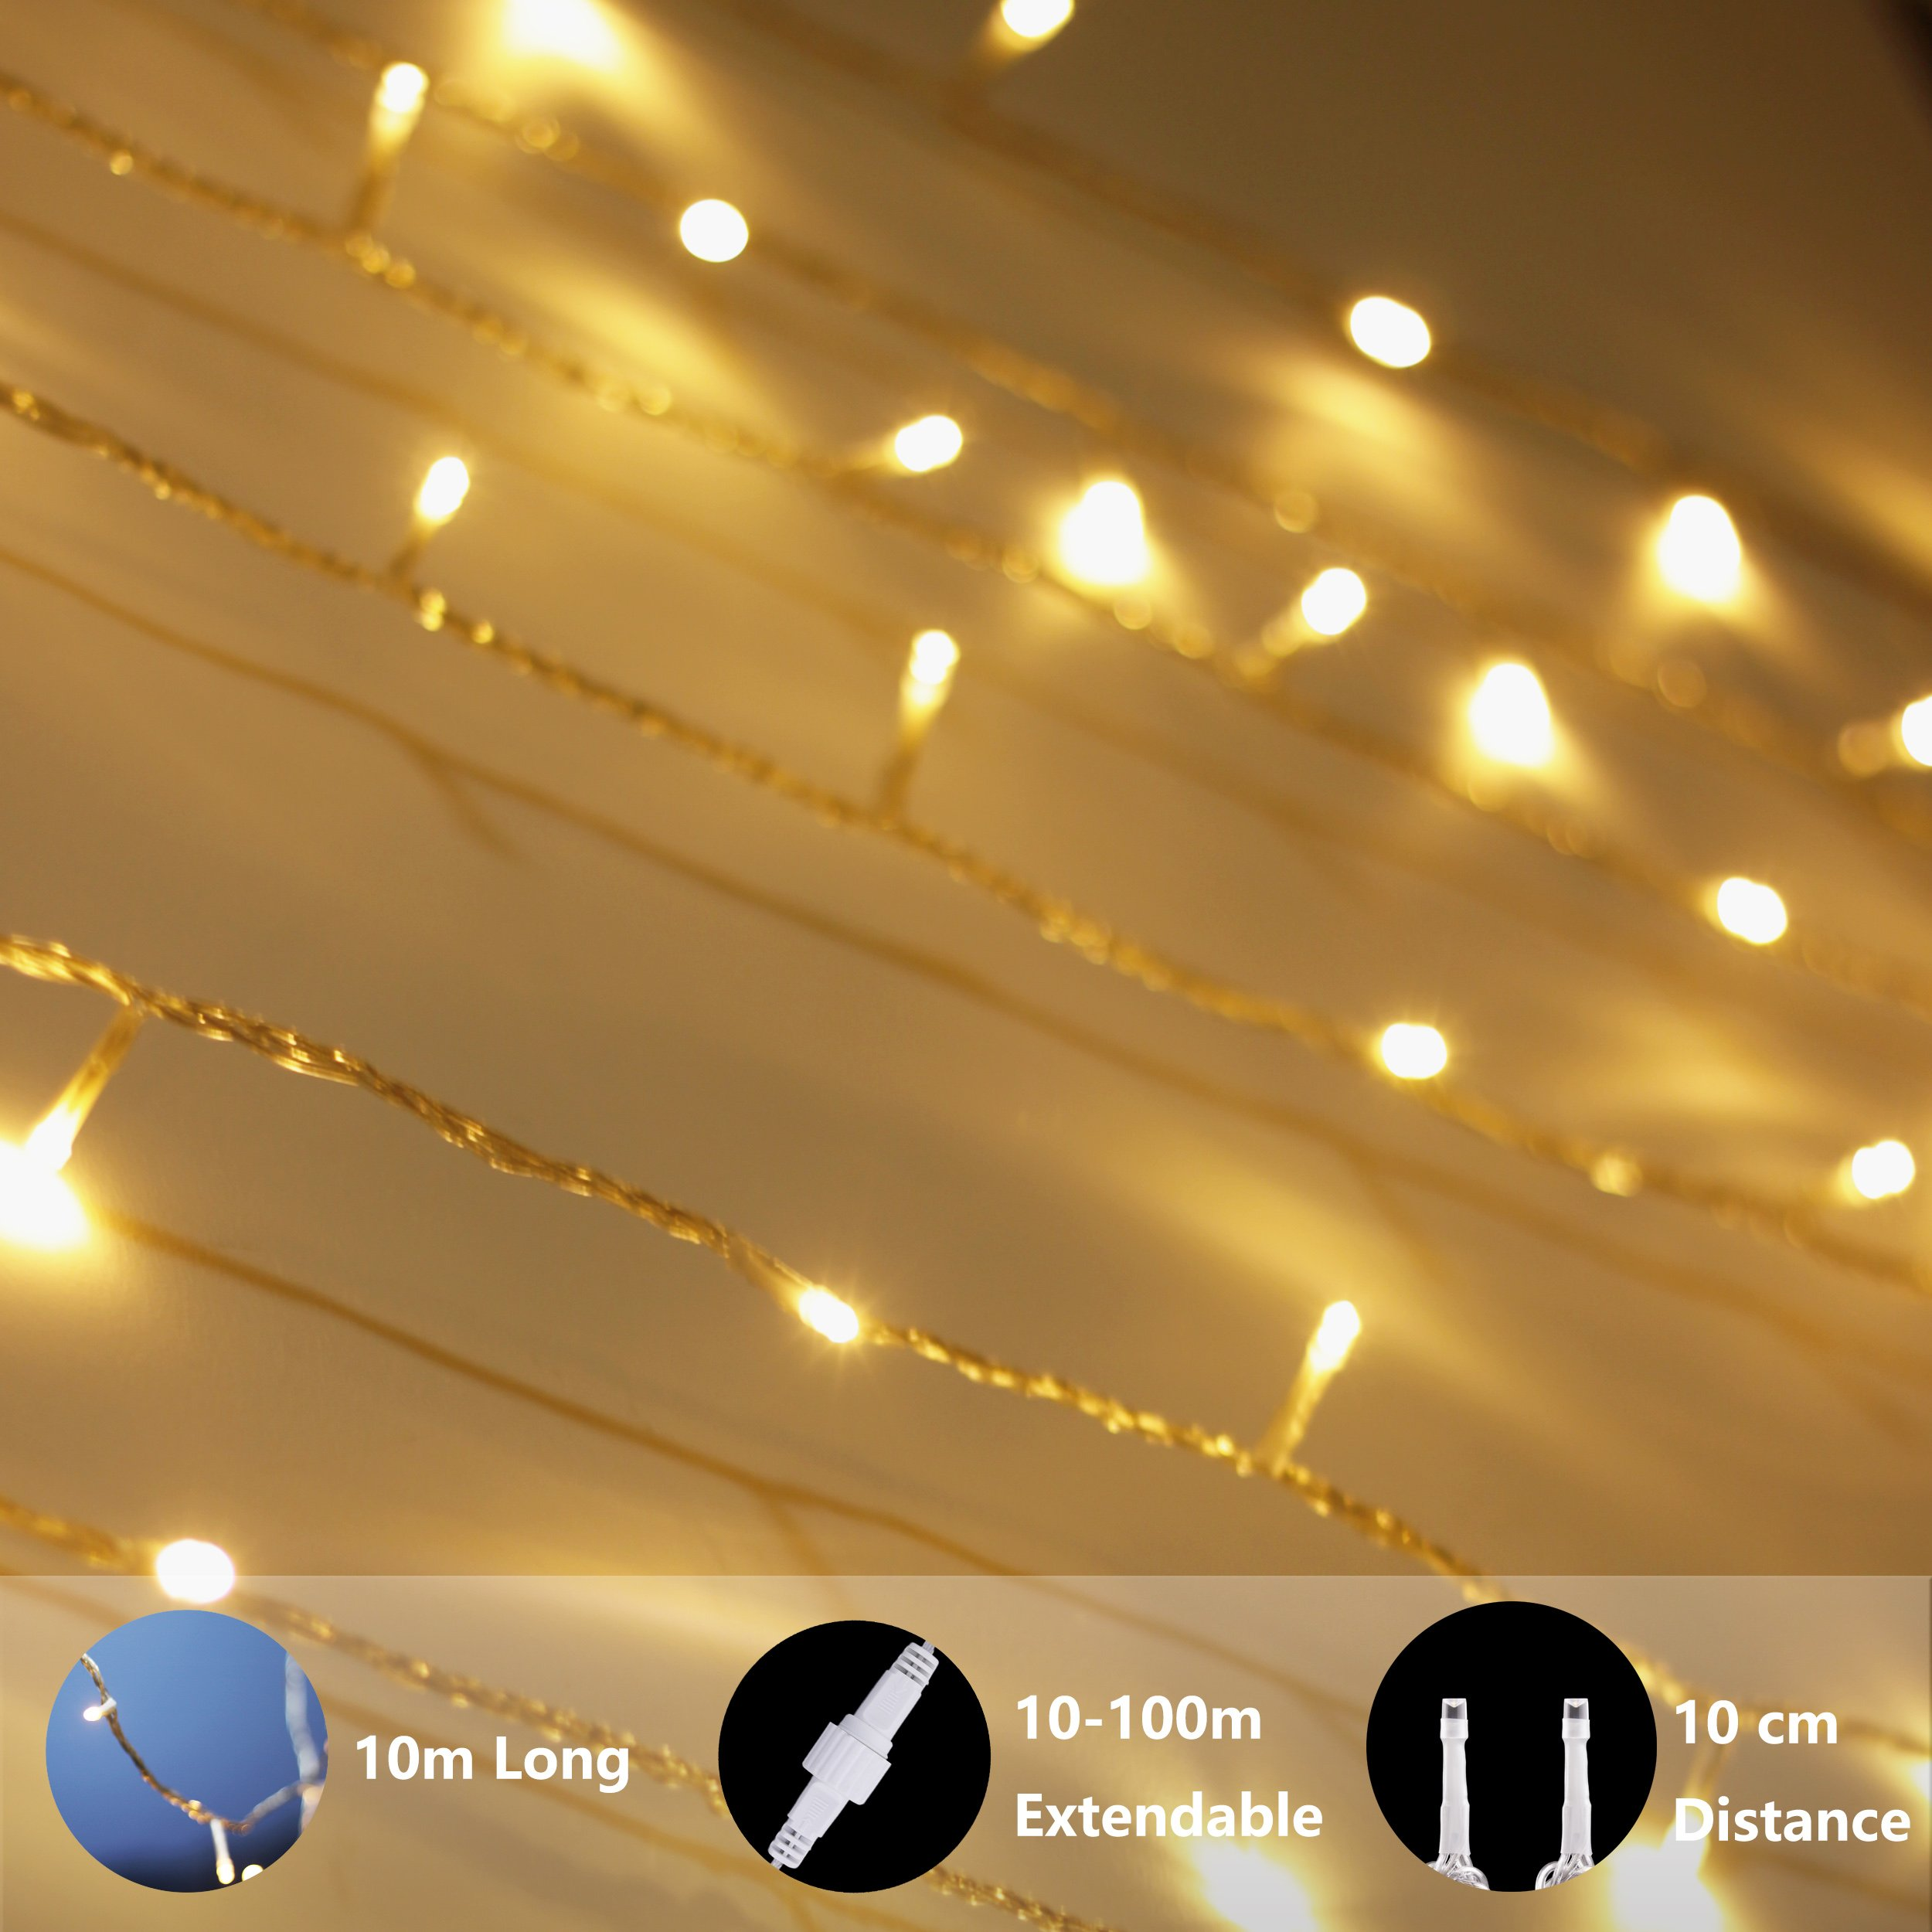 LouisChoice Extension Set of myCozyLite LED String Lights, 33 Ft, 100 LED, Waterproof with Male and Female Plug, Indoor & Outdoor Use (Transformer NOT Included) by LouisChoice (Image #5)